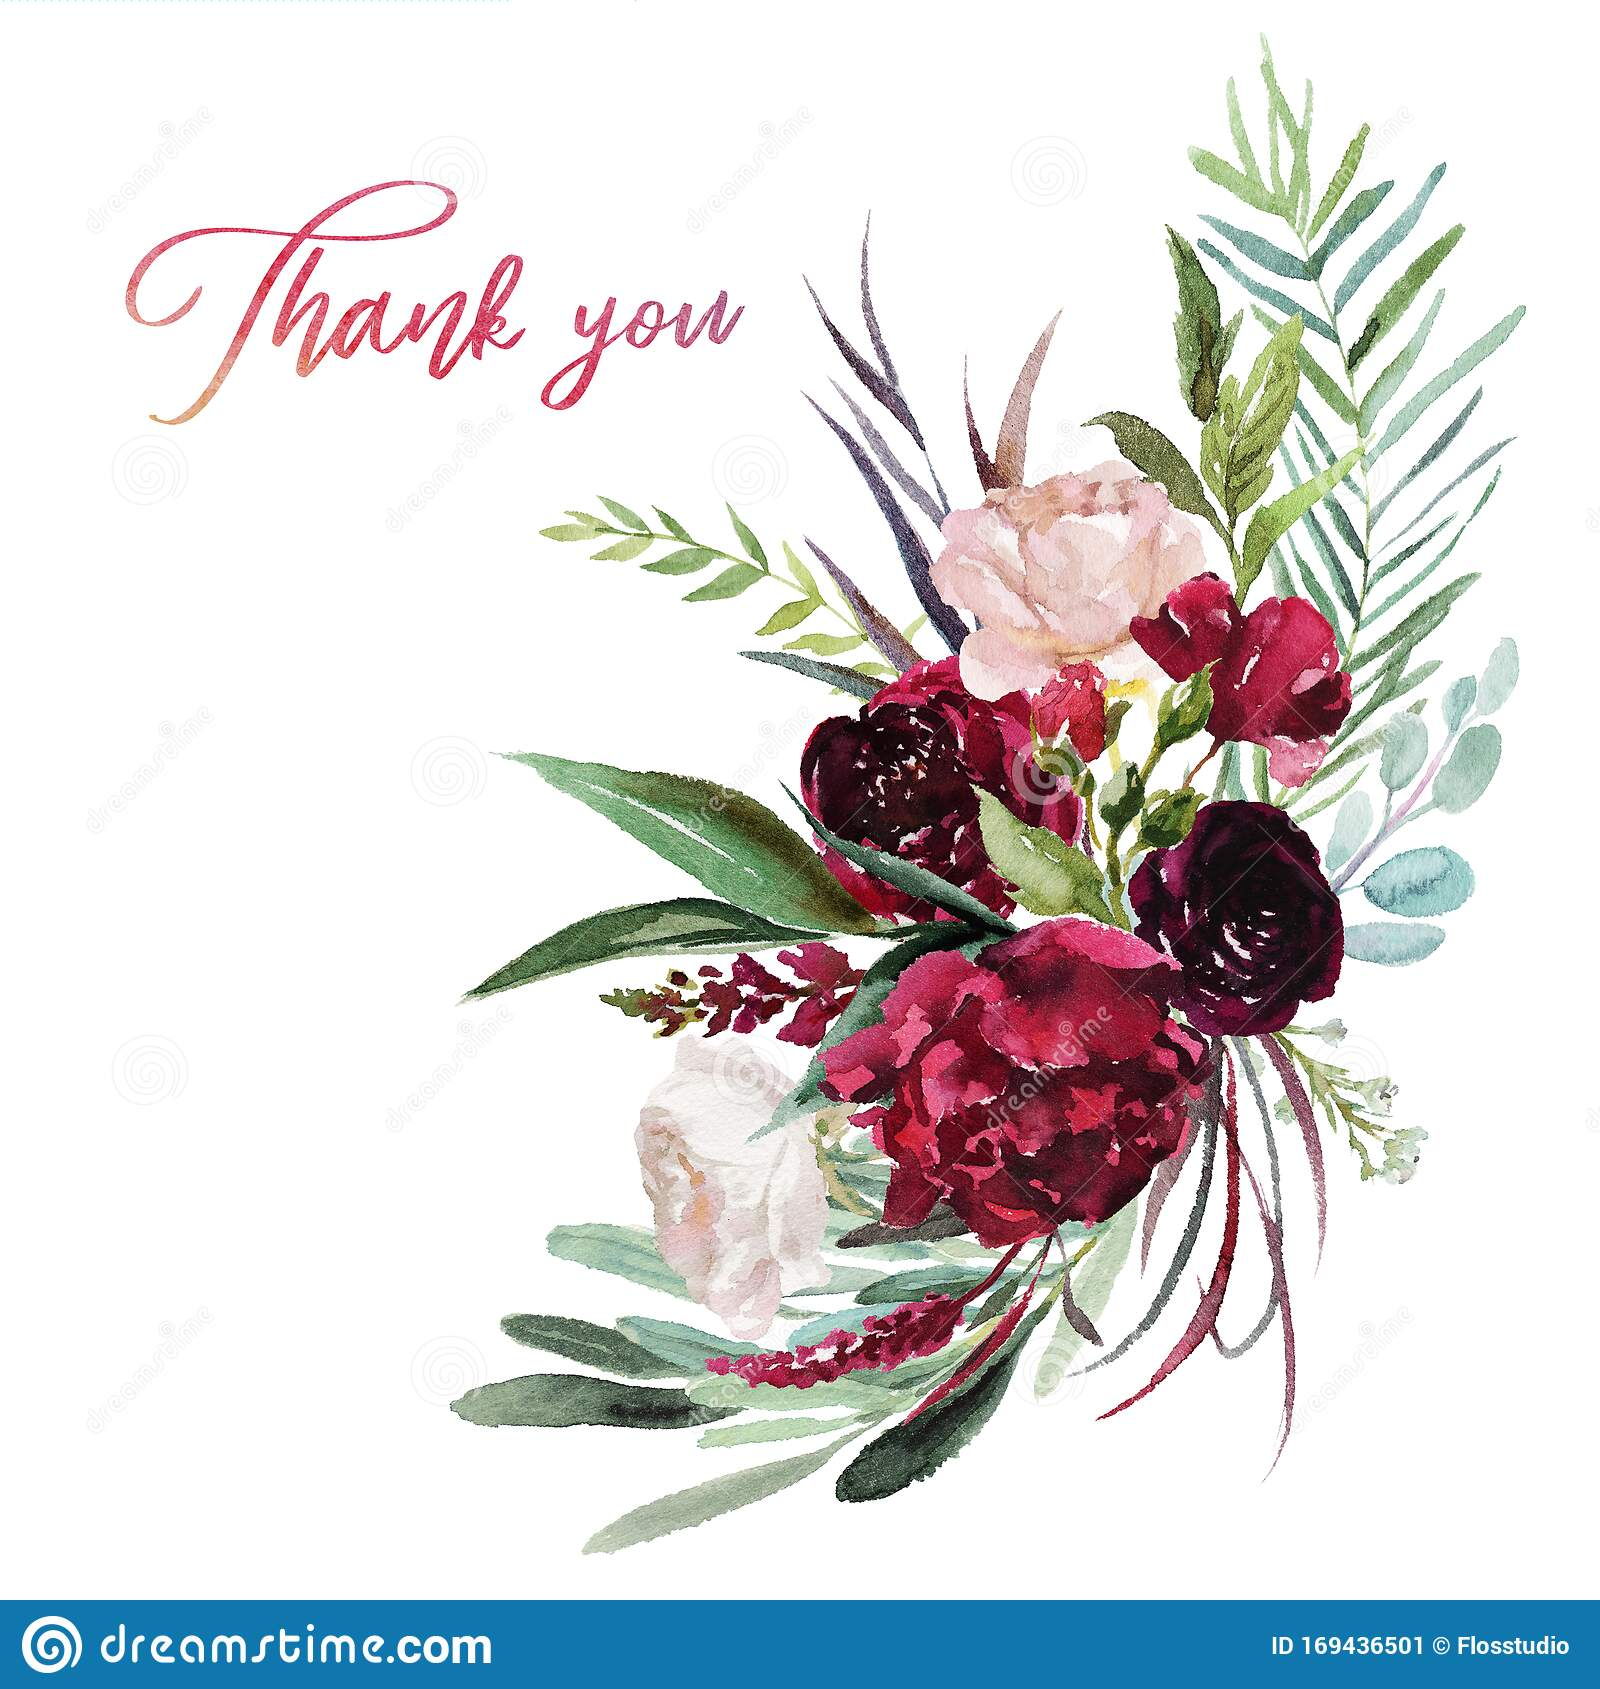 Watercolor Floral Illustration Flowers Burgundy Bouquet Stock Illustration Illustration Of Hand Leaf 169436501